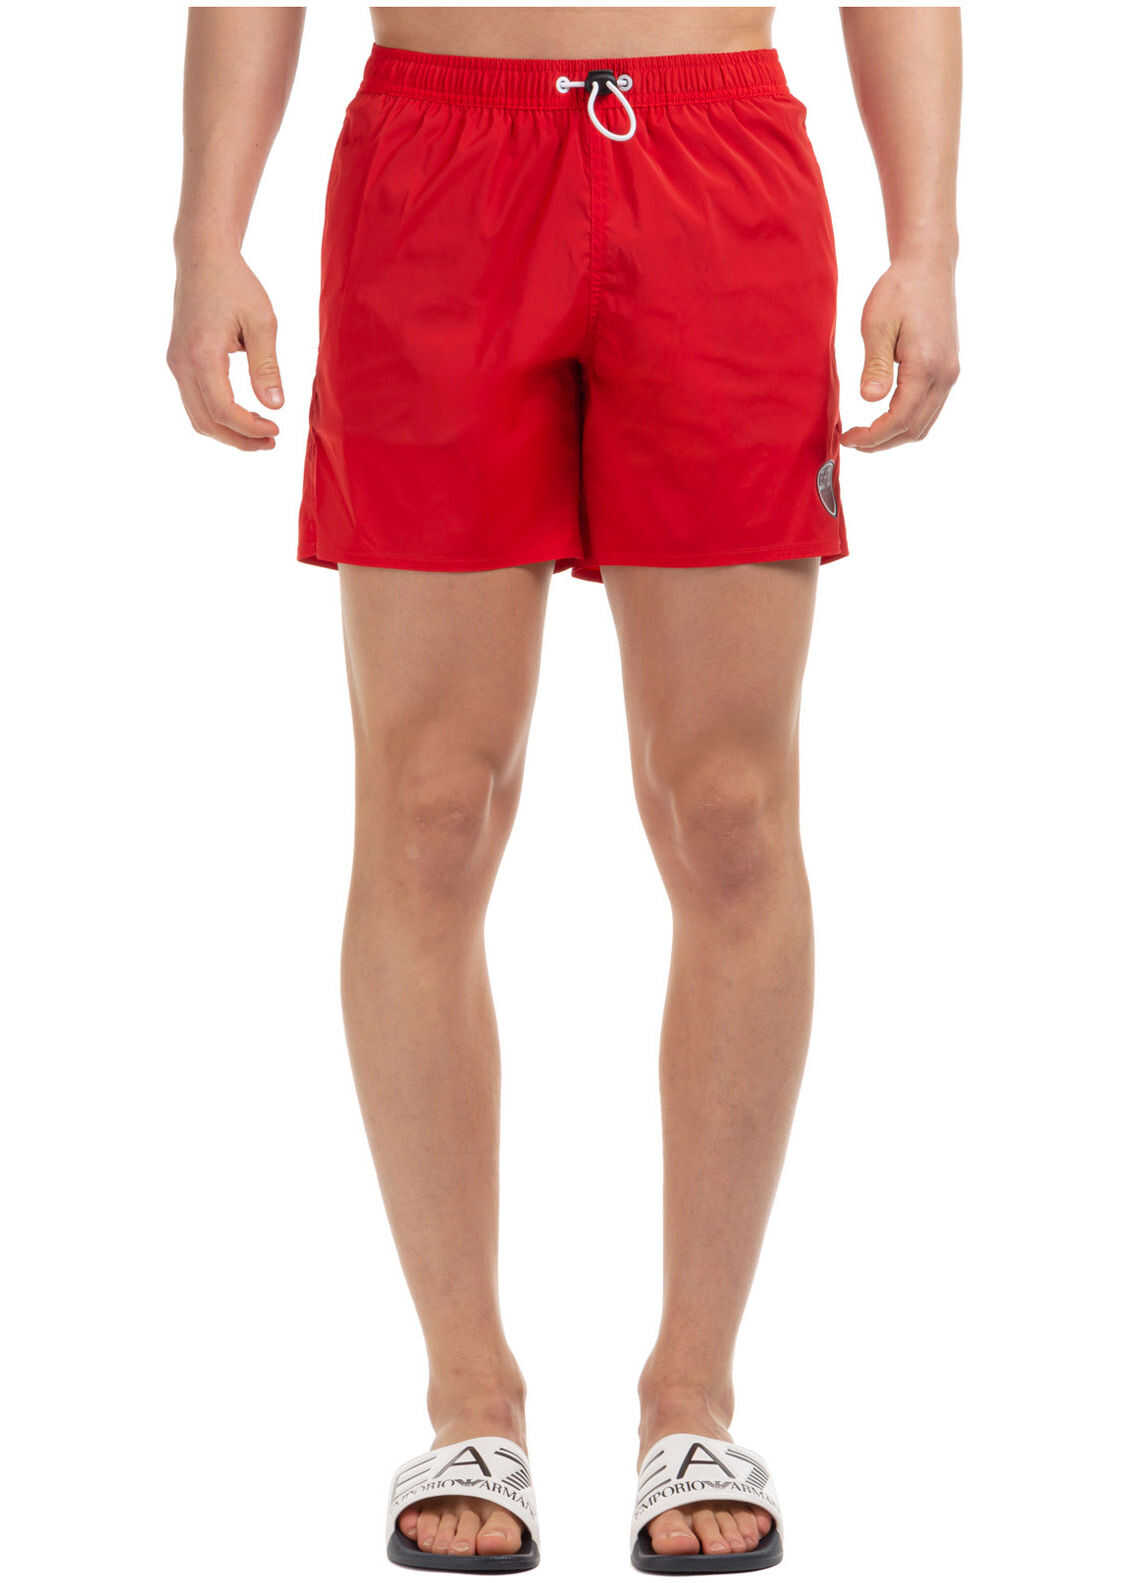 EA7 Swimming Suit Red